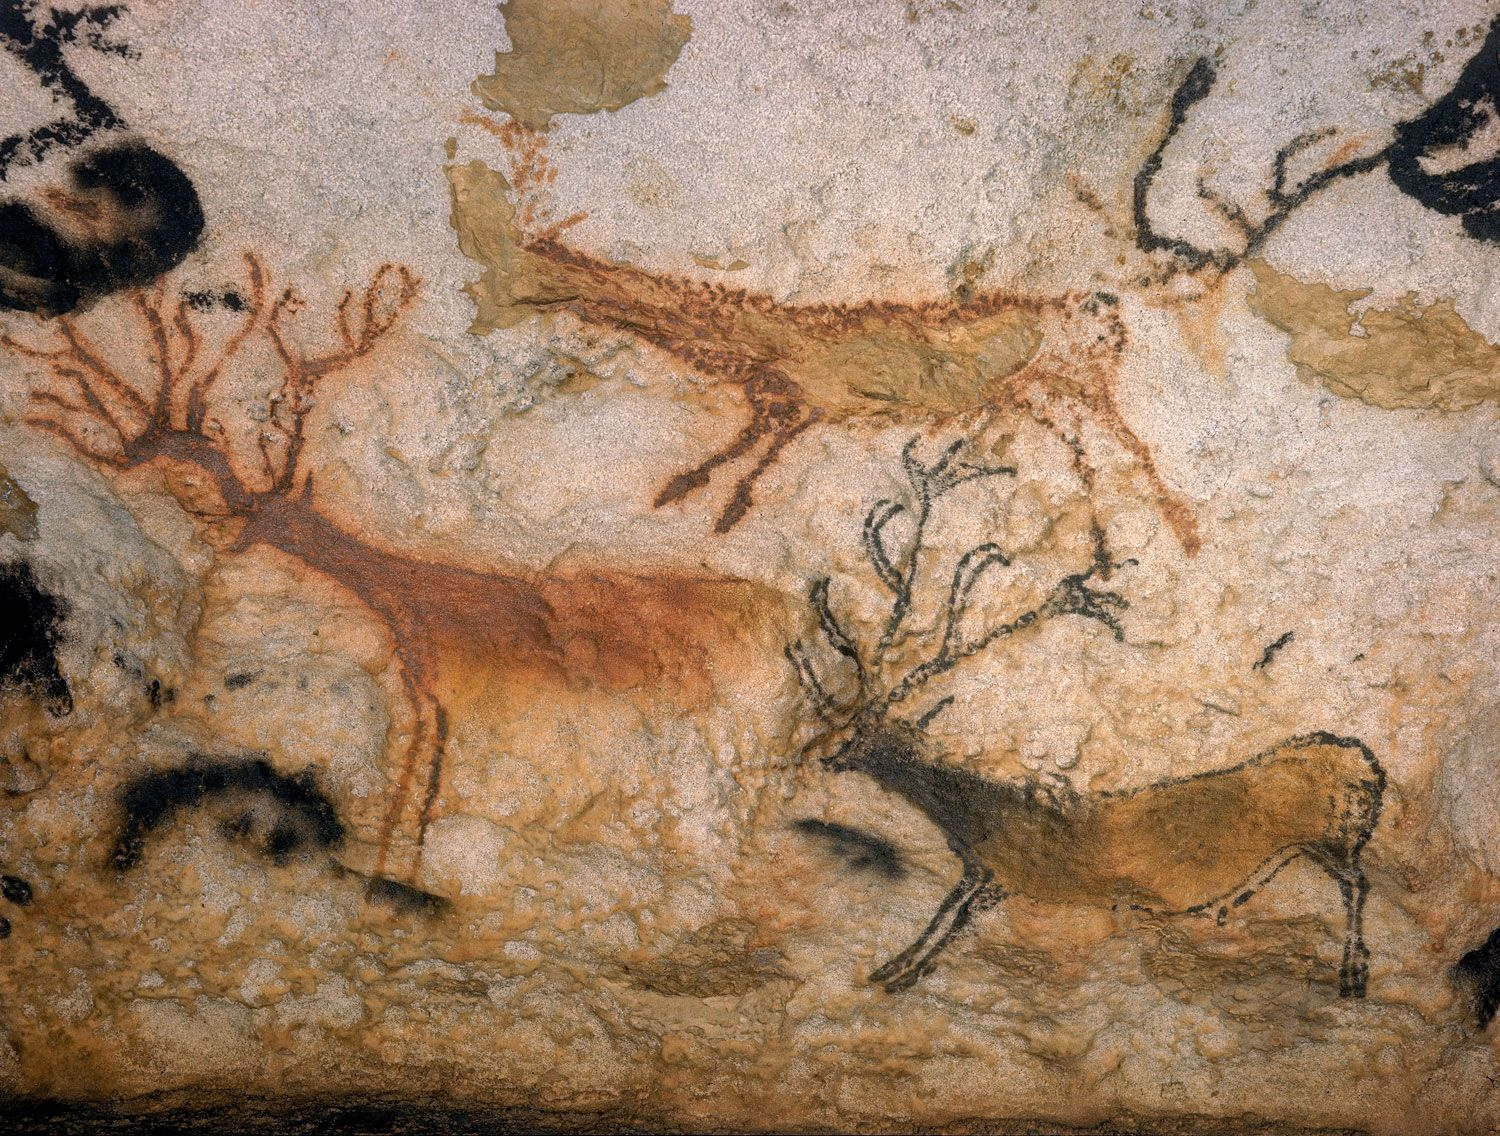 LIFE at Lascaux: Color Photos From Another World | LIFE.com